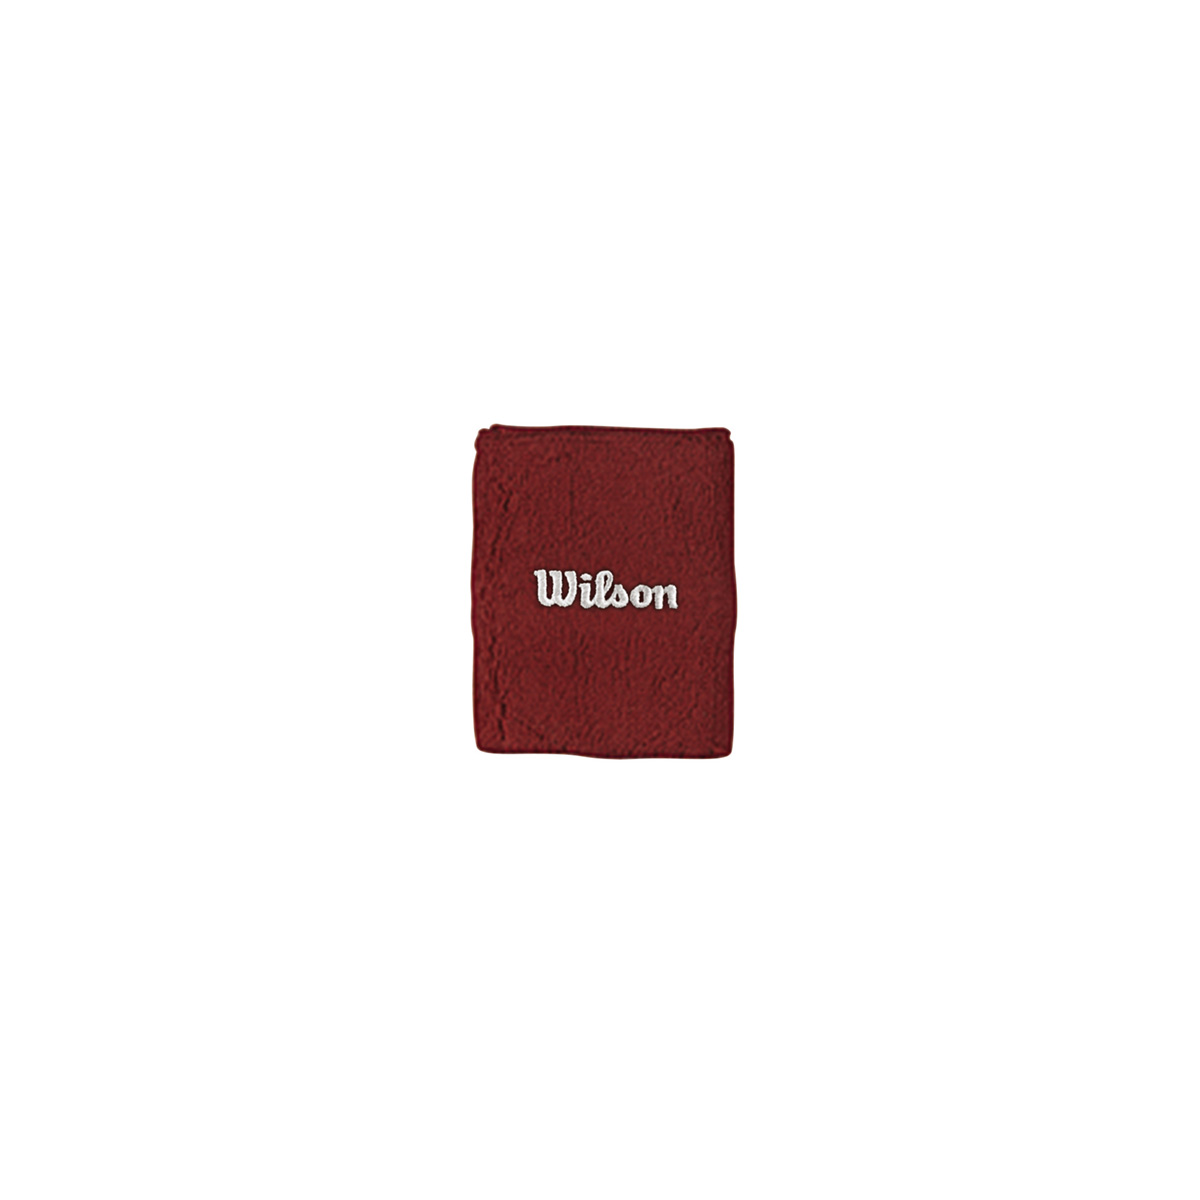 WR5600390_0_Wilson_DoubleWristband_red.png.cq5dam.web.2000.2000